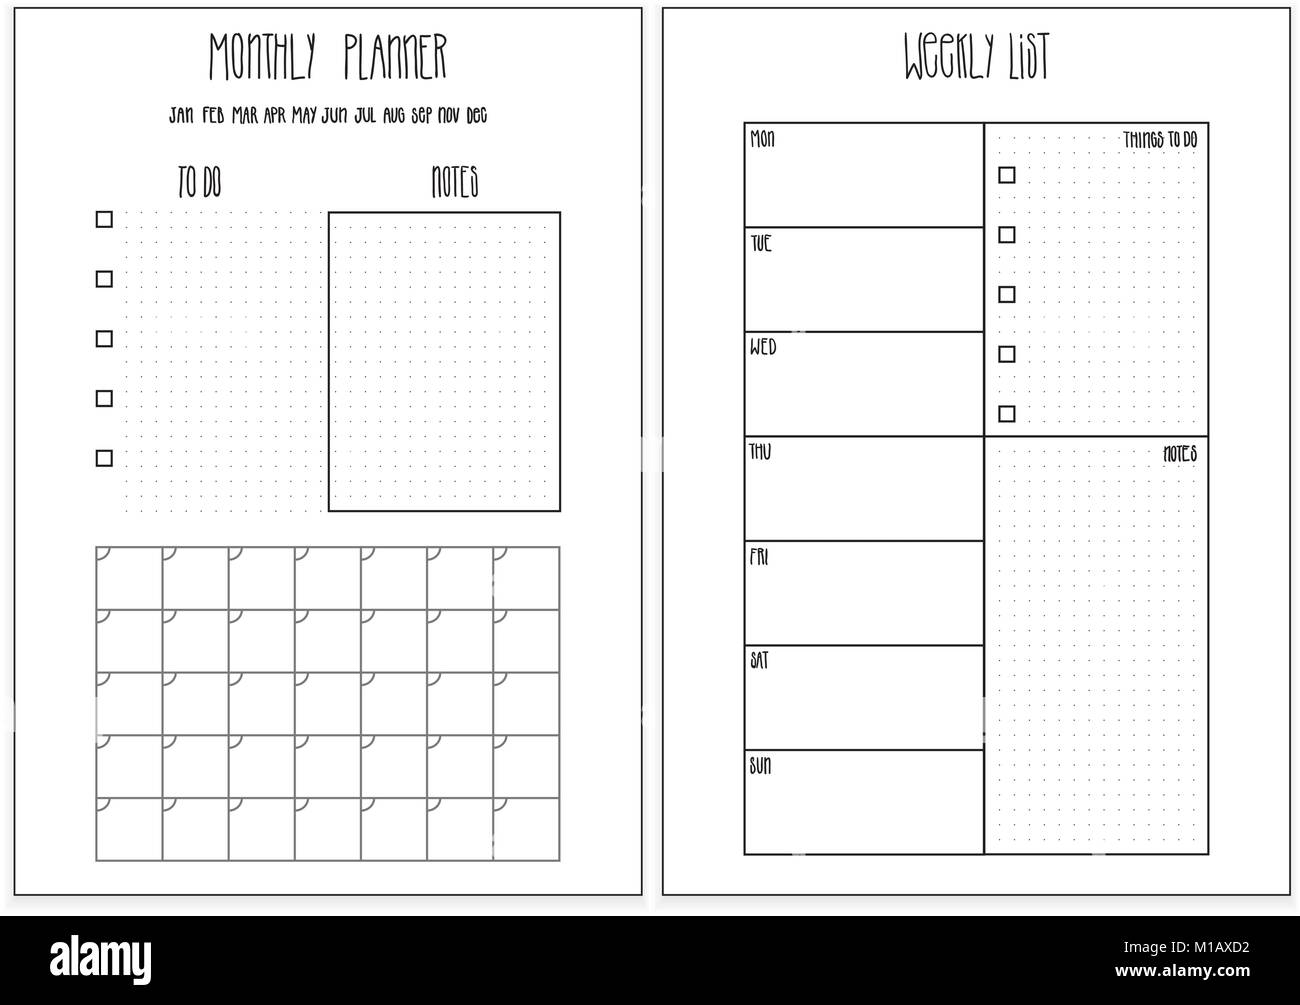 weekly planner monthly planner printable pages vector organizer